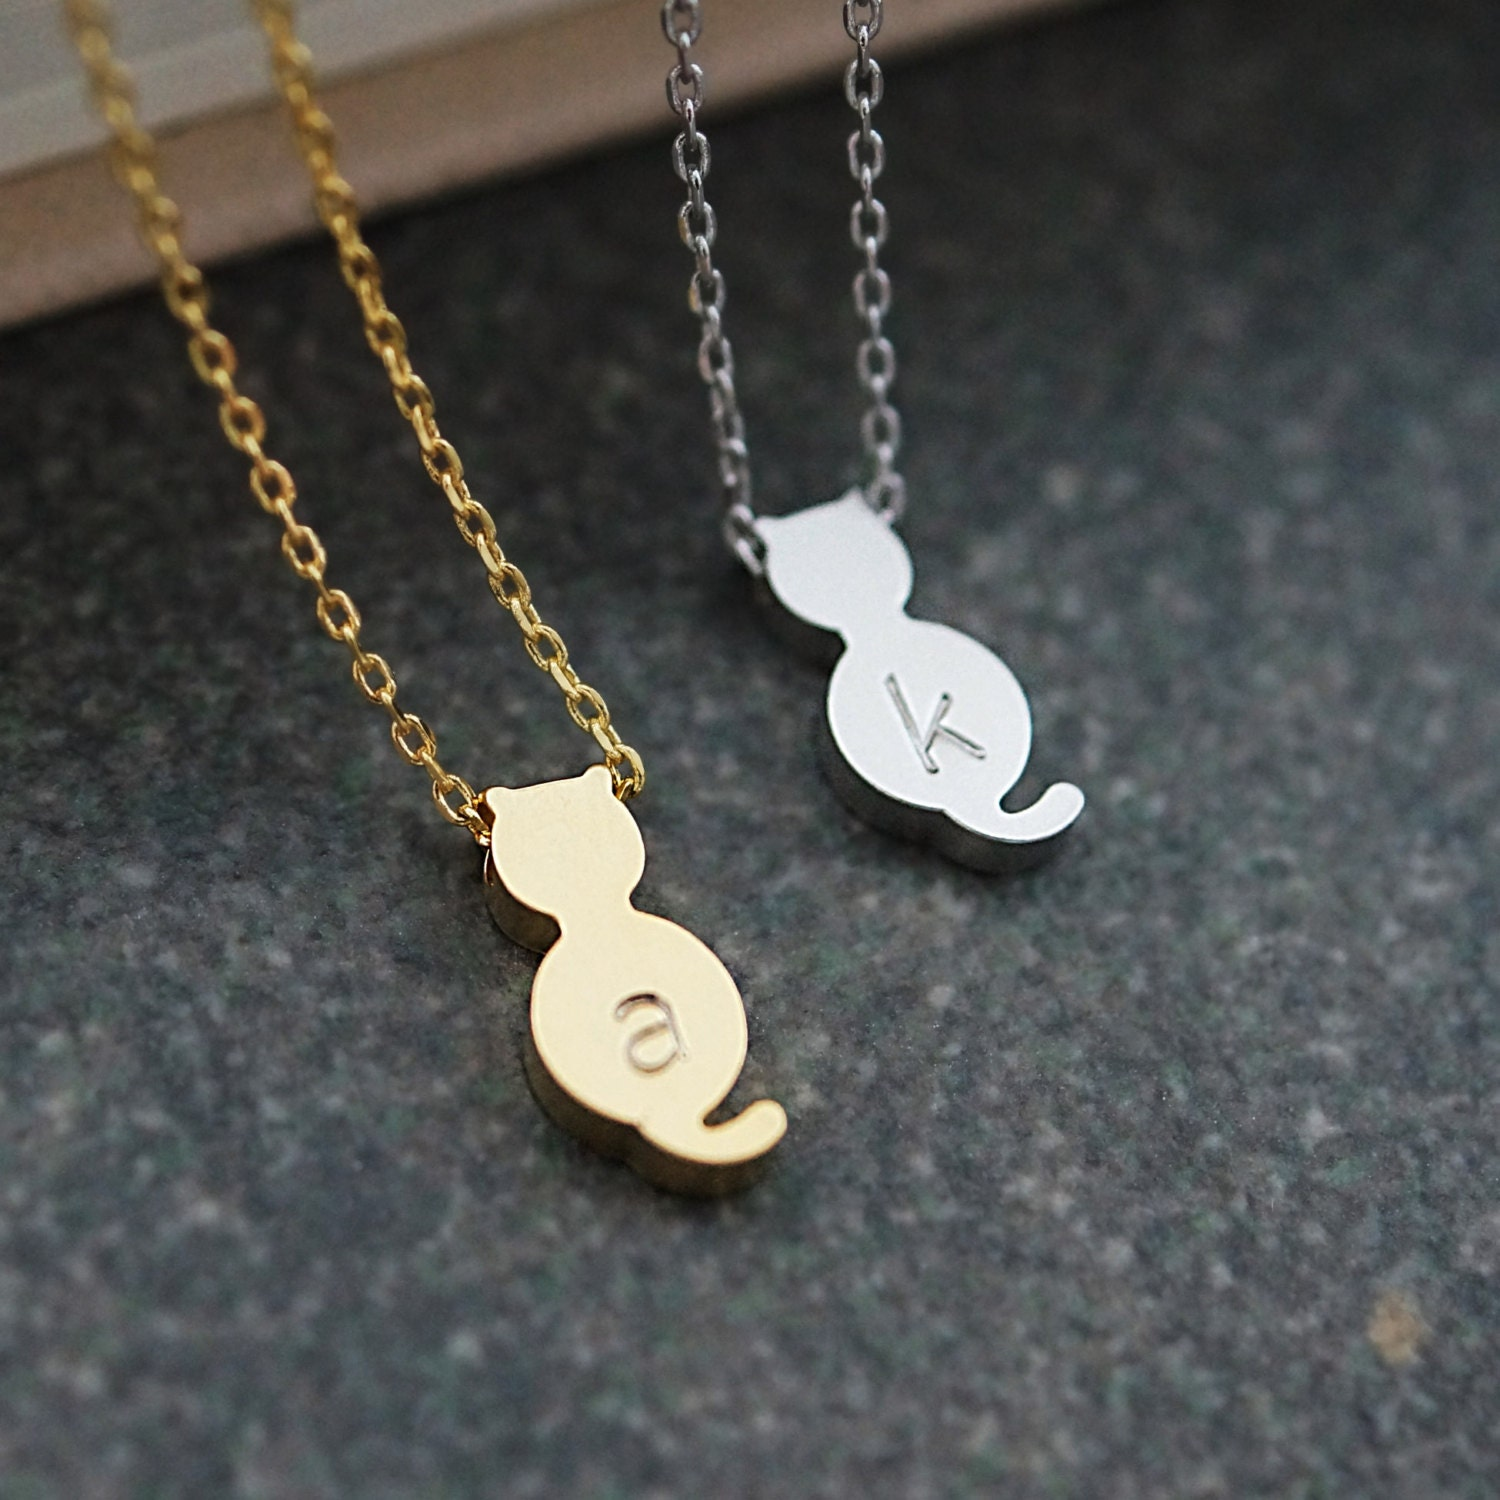 cat gold charm gift for women pendant color dimondsify rhinestone cute animal trendy hot product pet wholesale silver silvergold jewelry necklace